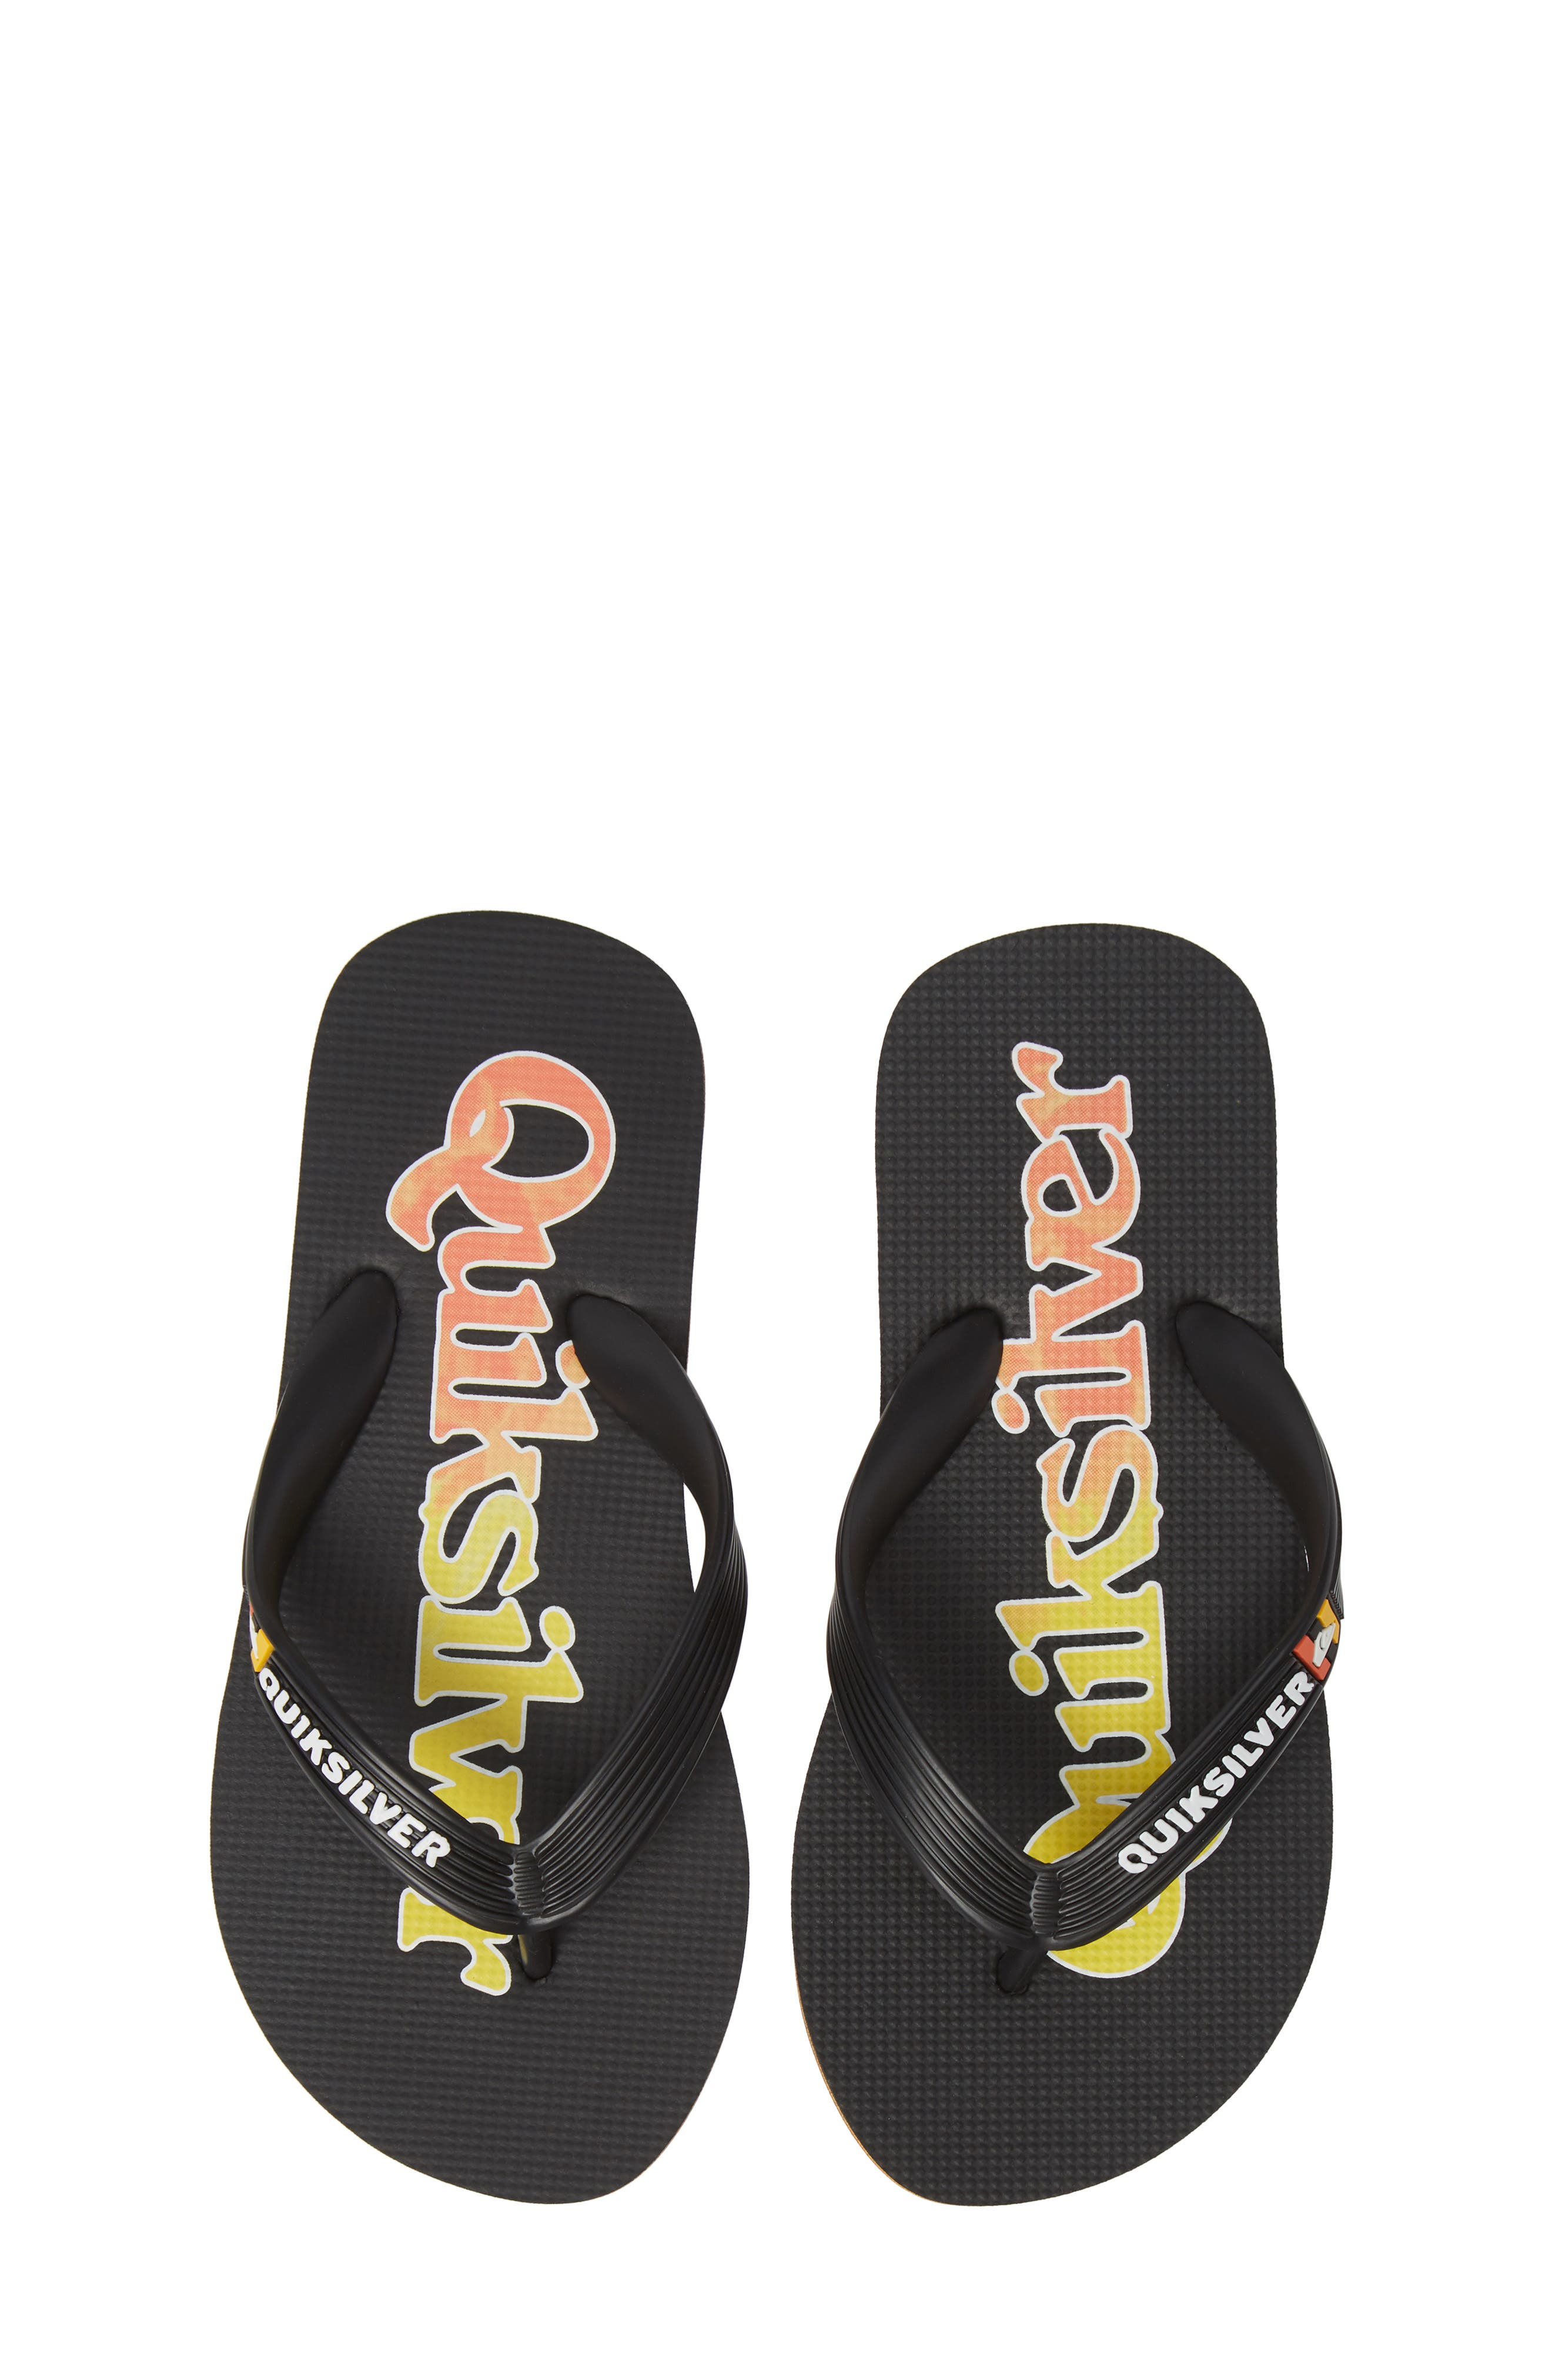 5298283e2d1a Boys Sandals - Shoes - Kids  Shoes and Boots to Buy Online